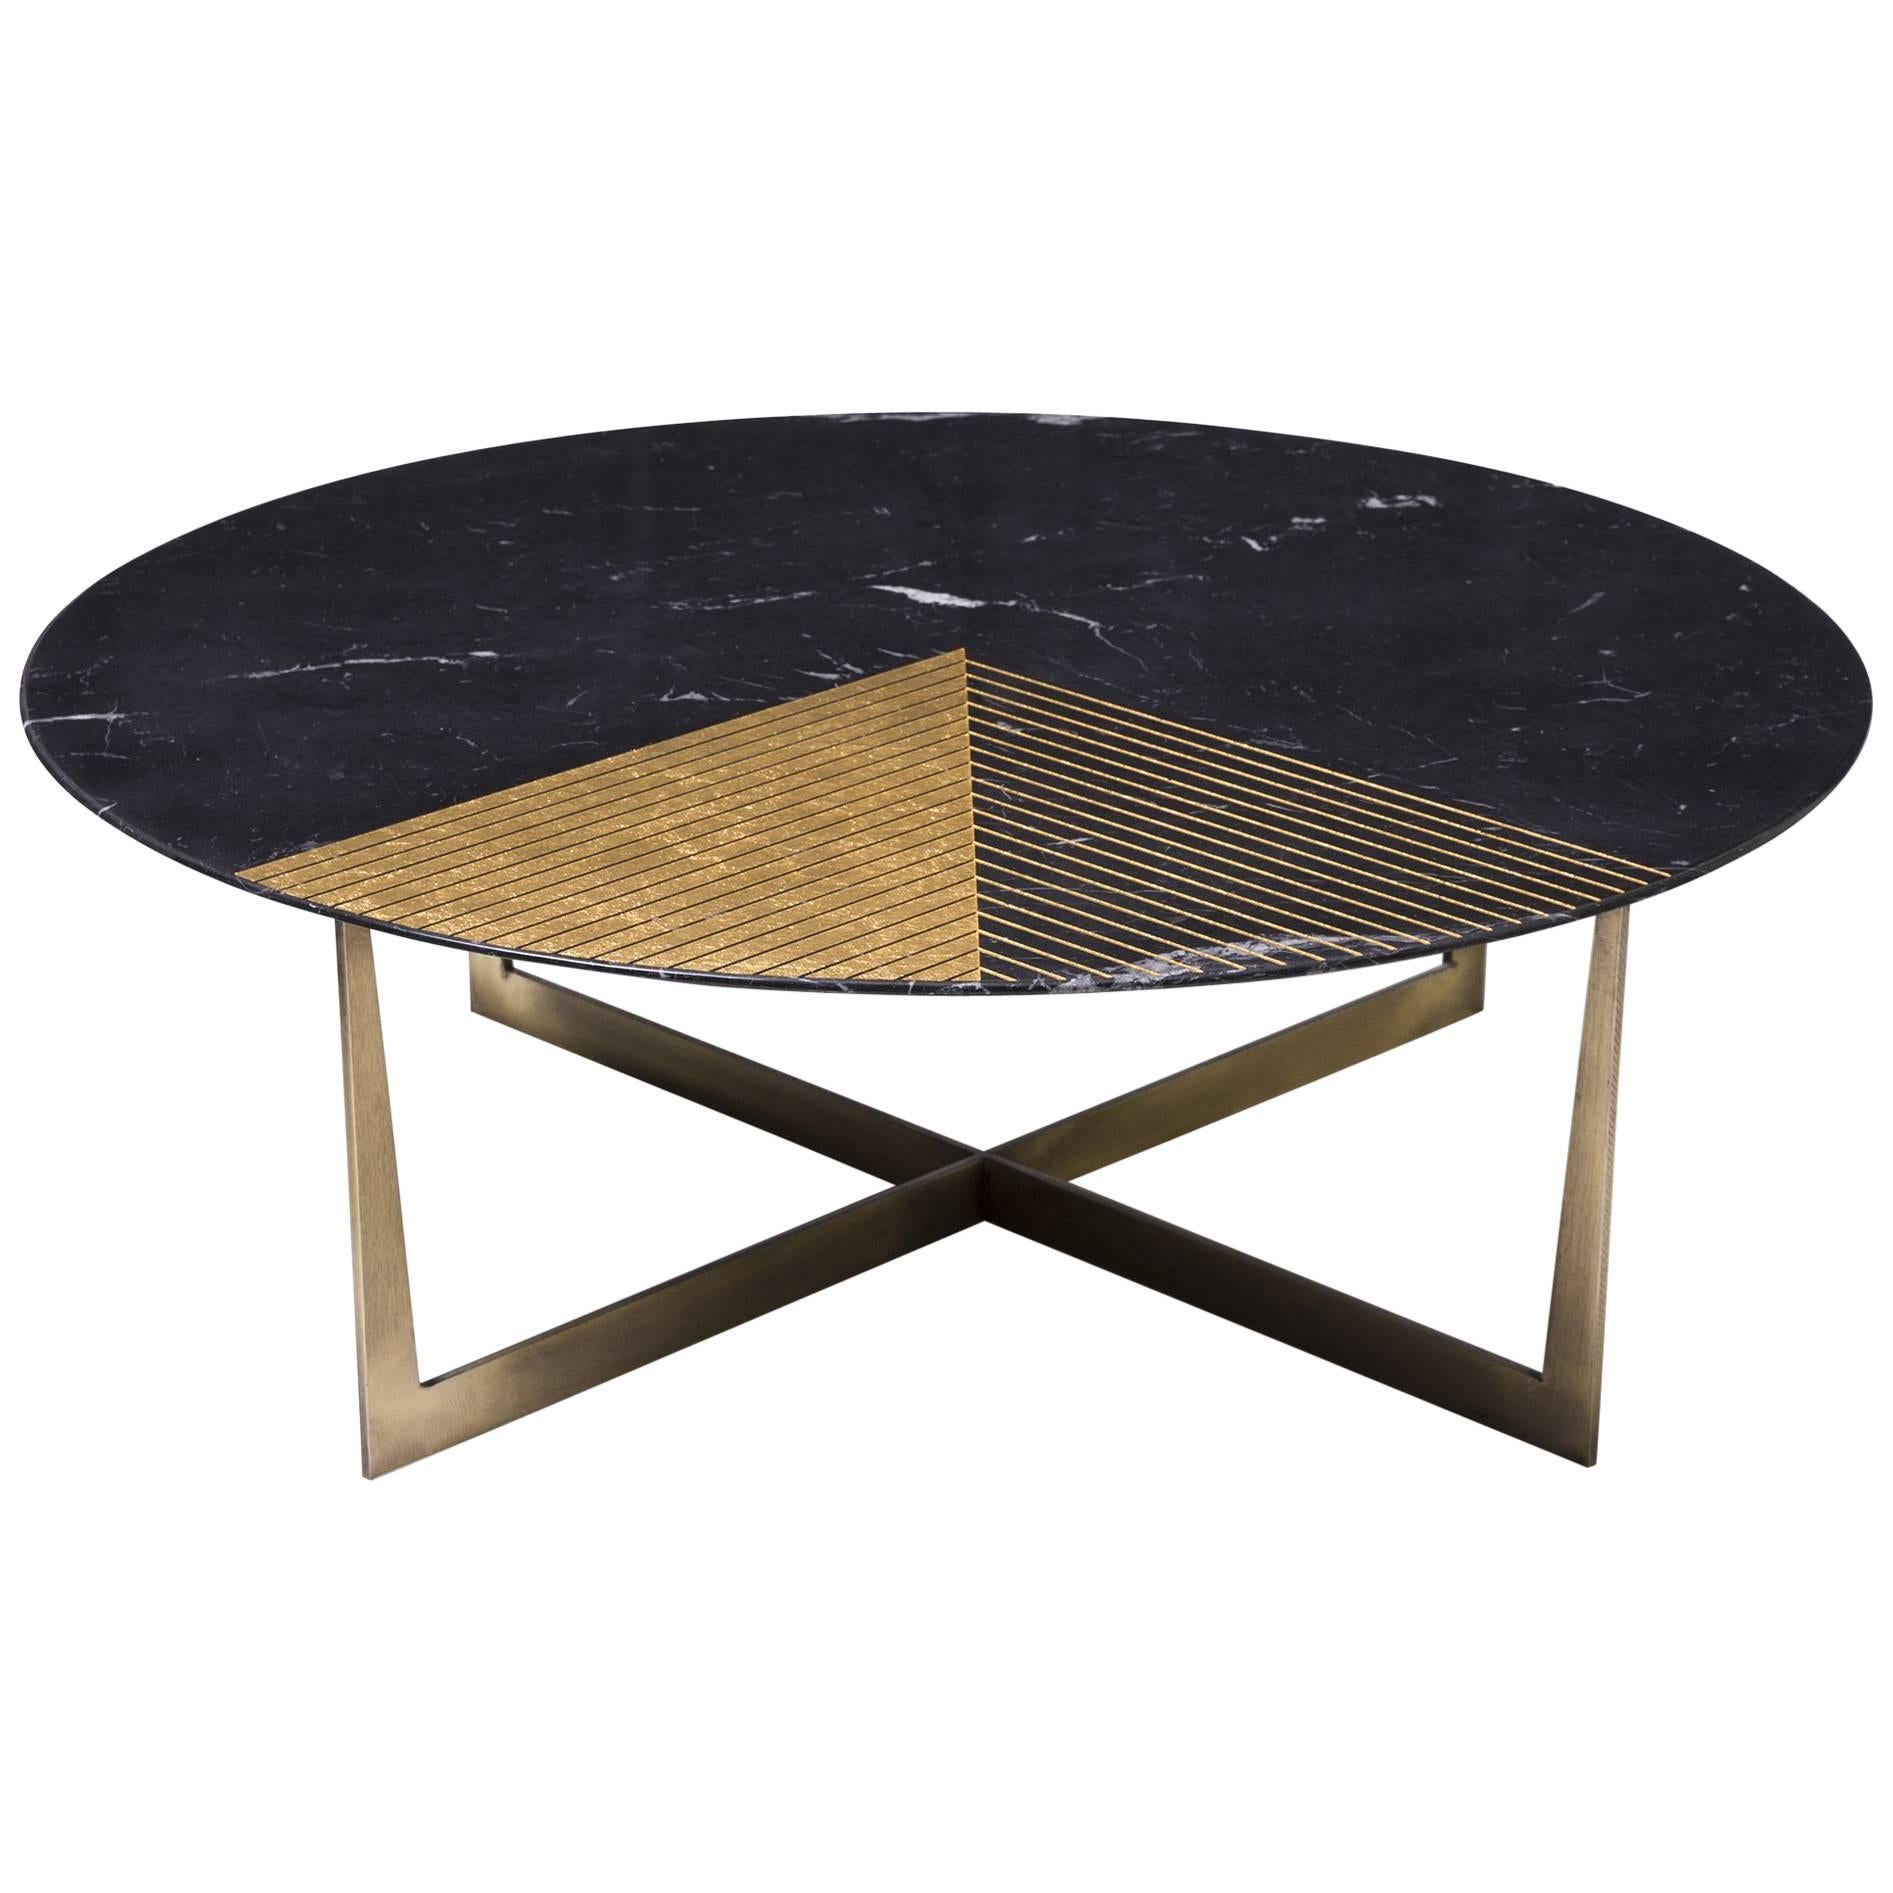 Golden Radius Coffee Table in Marquino and Gold Leaf by Alex Mint